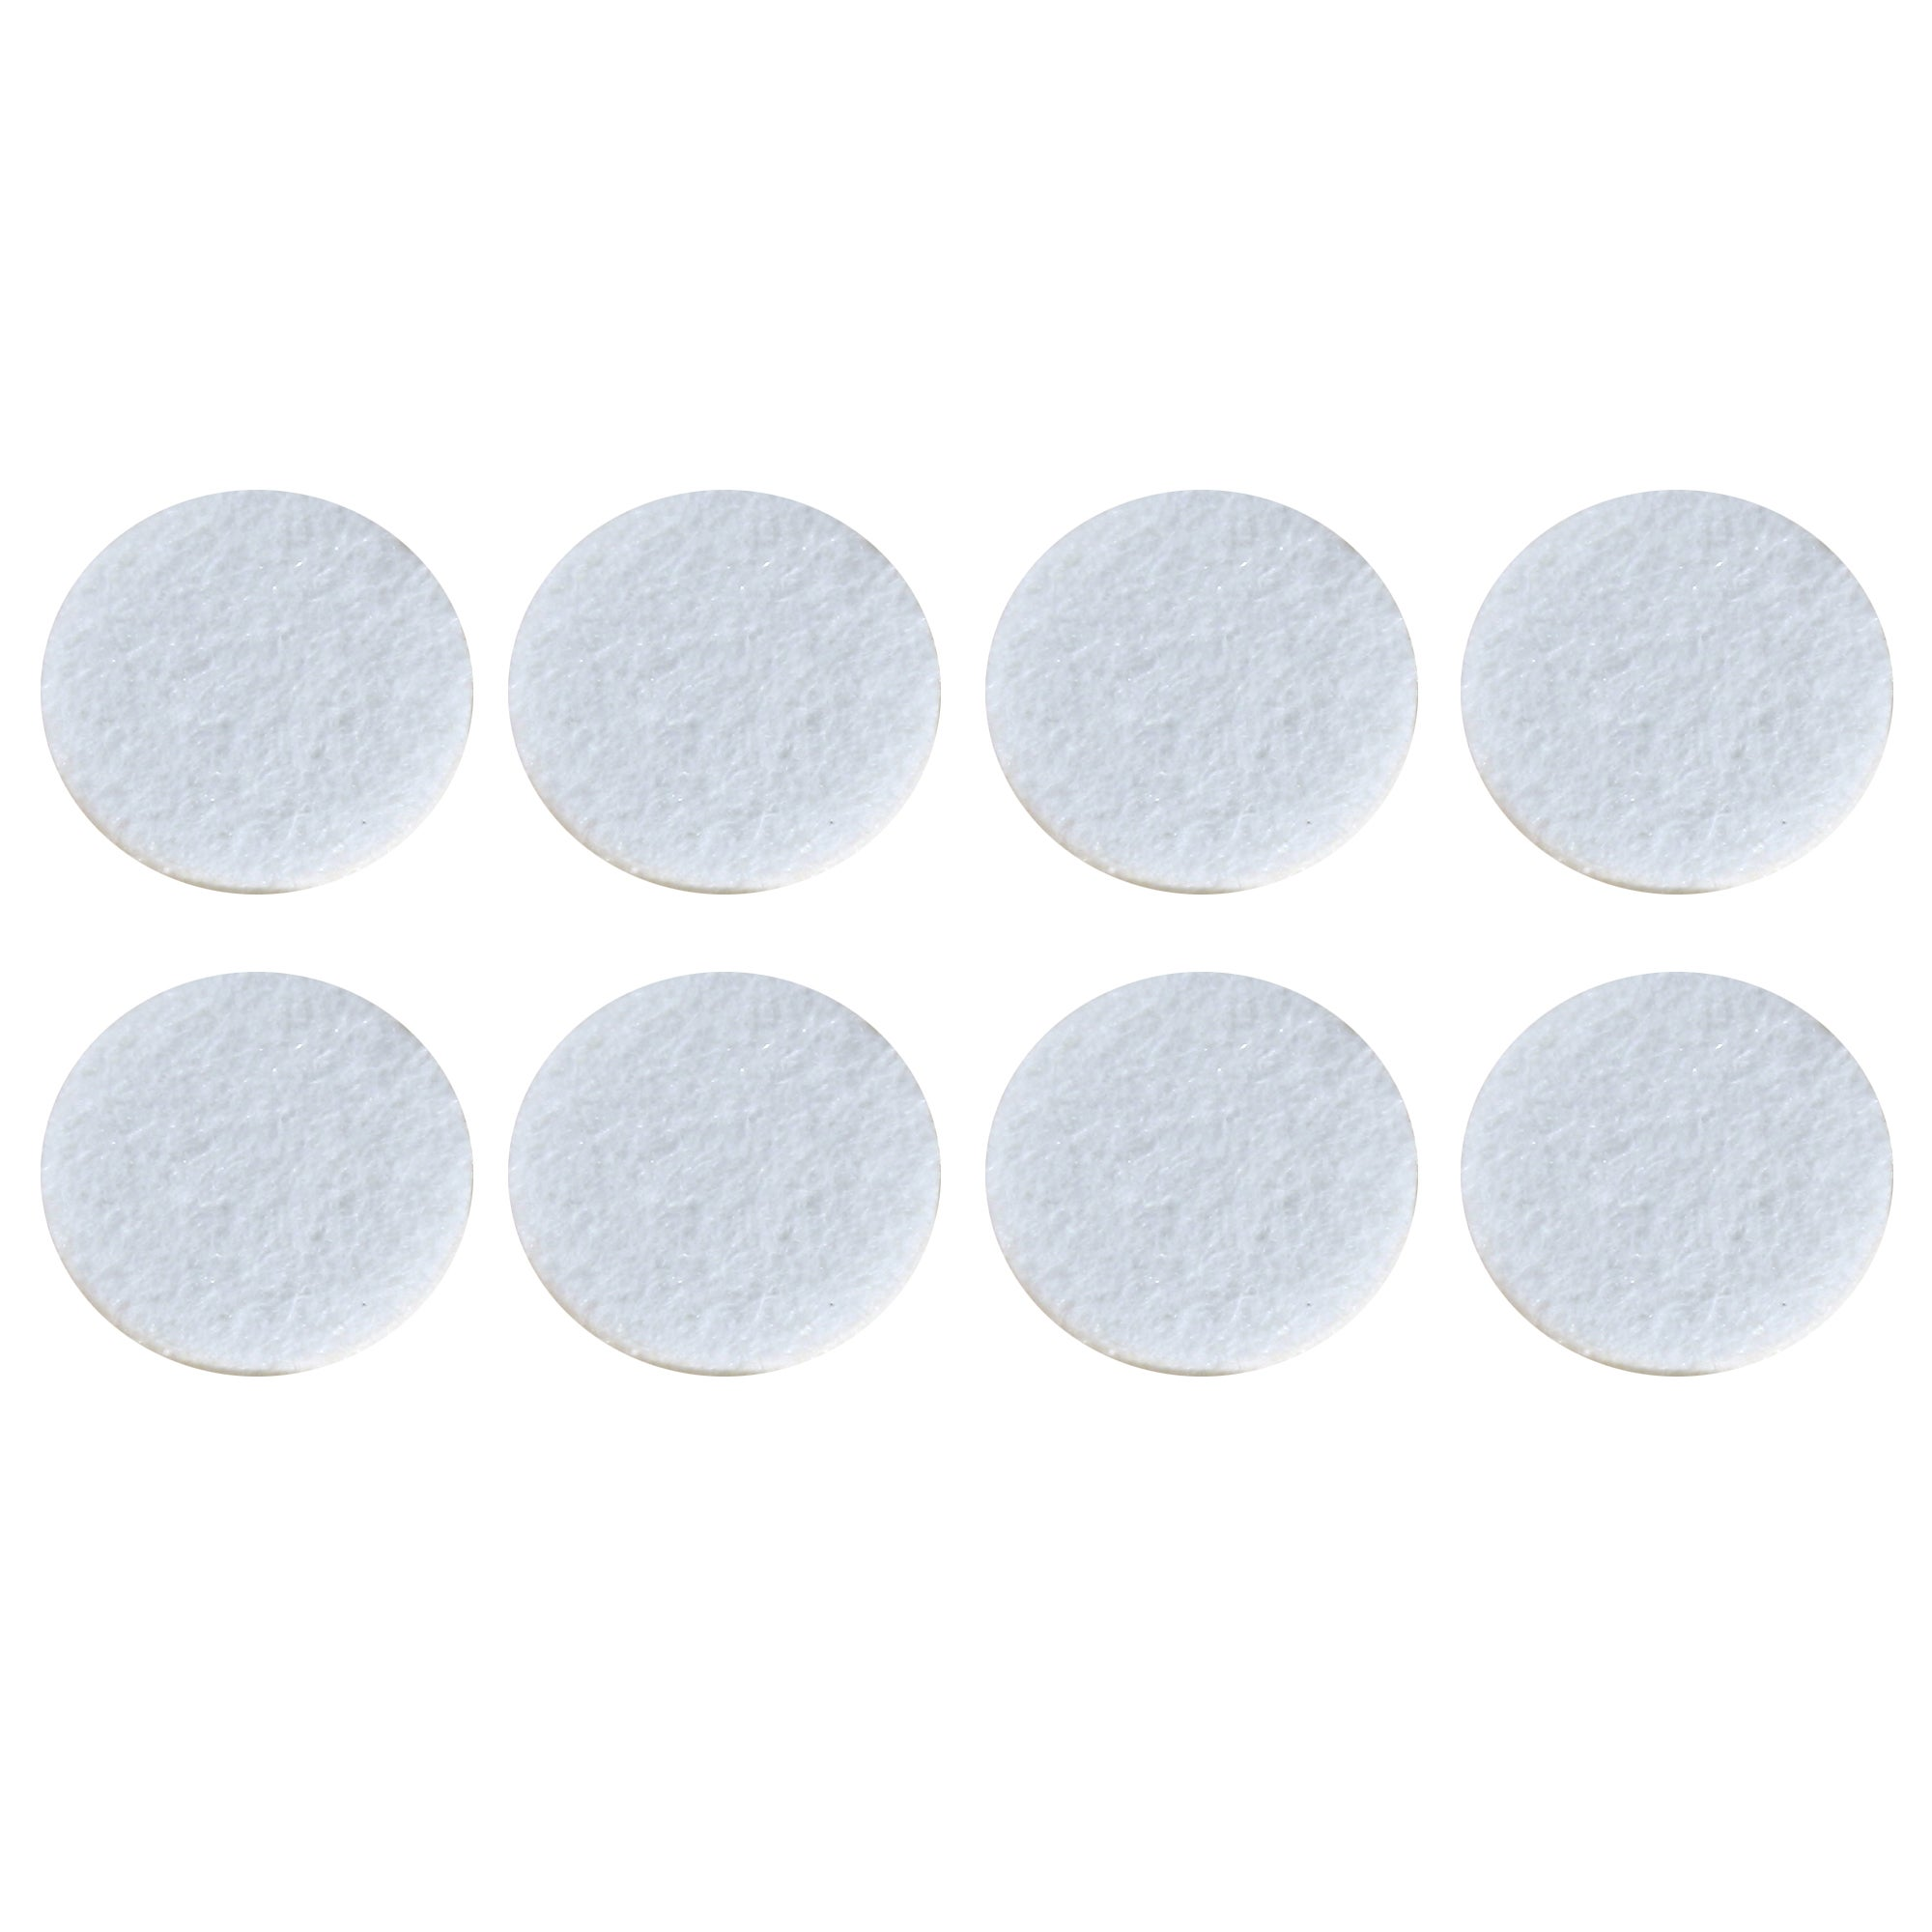 Pack of 8 Felt Pads